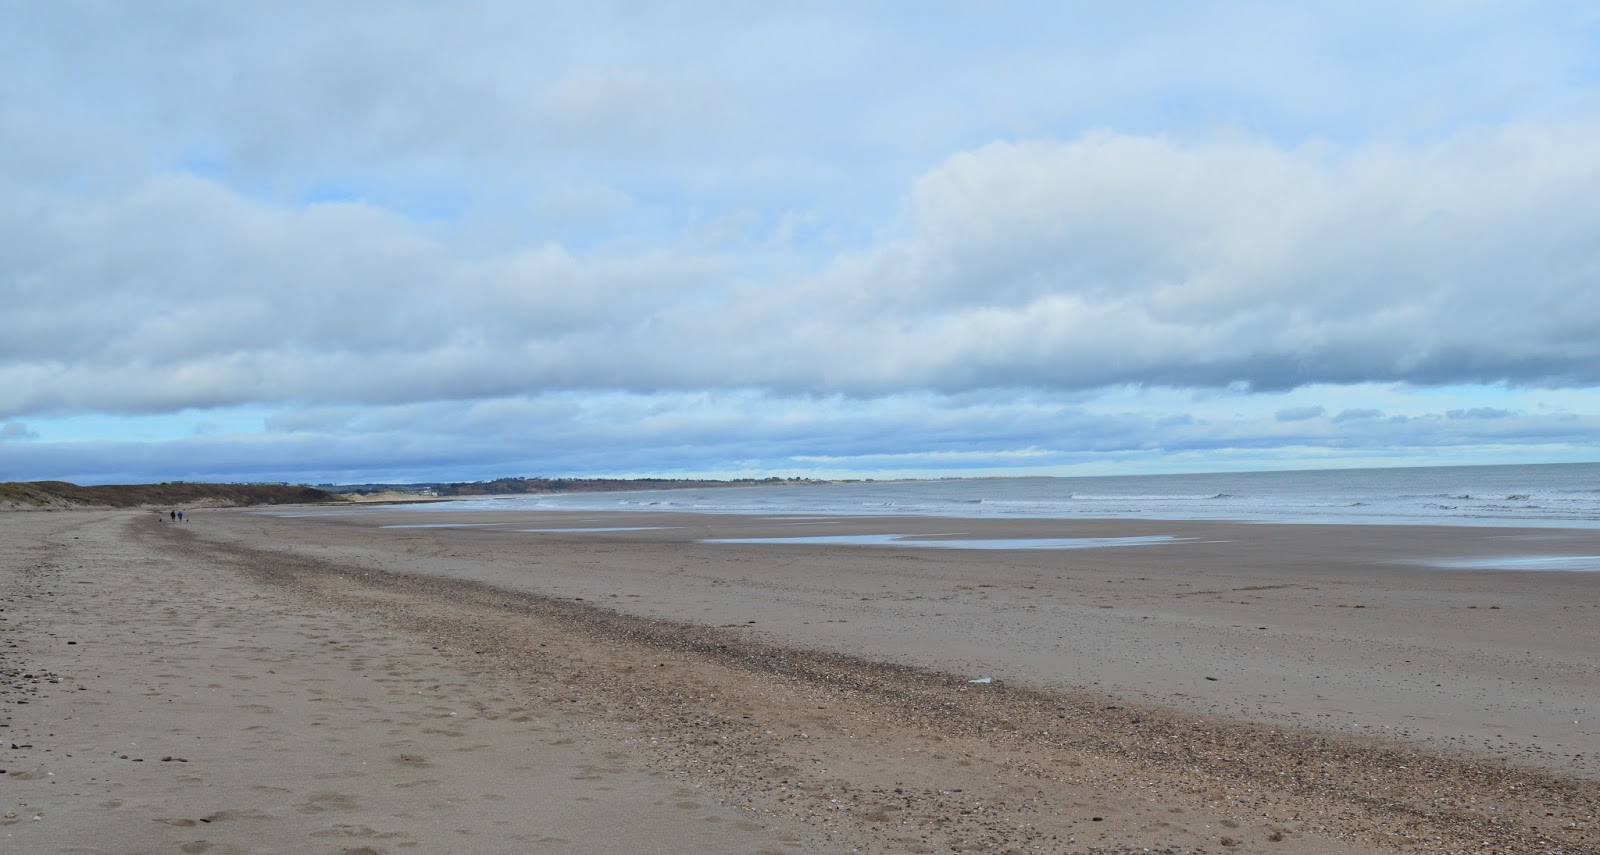 Warkworth beach in Northumberland